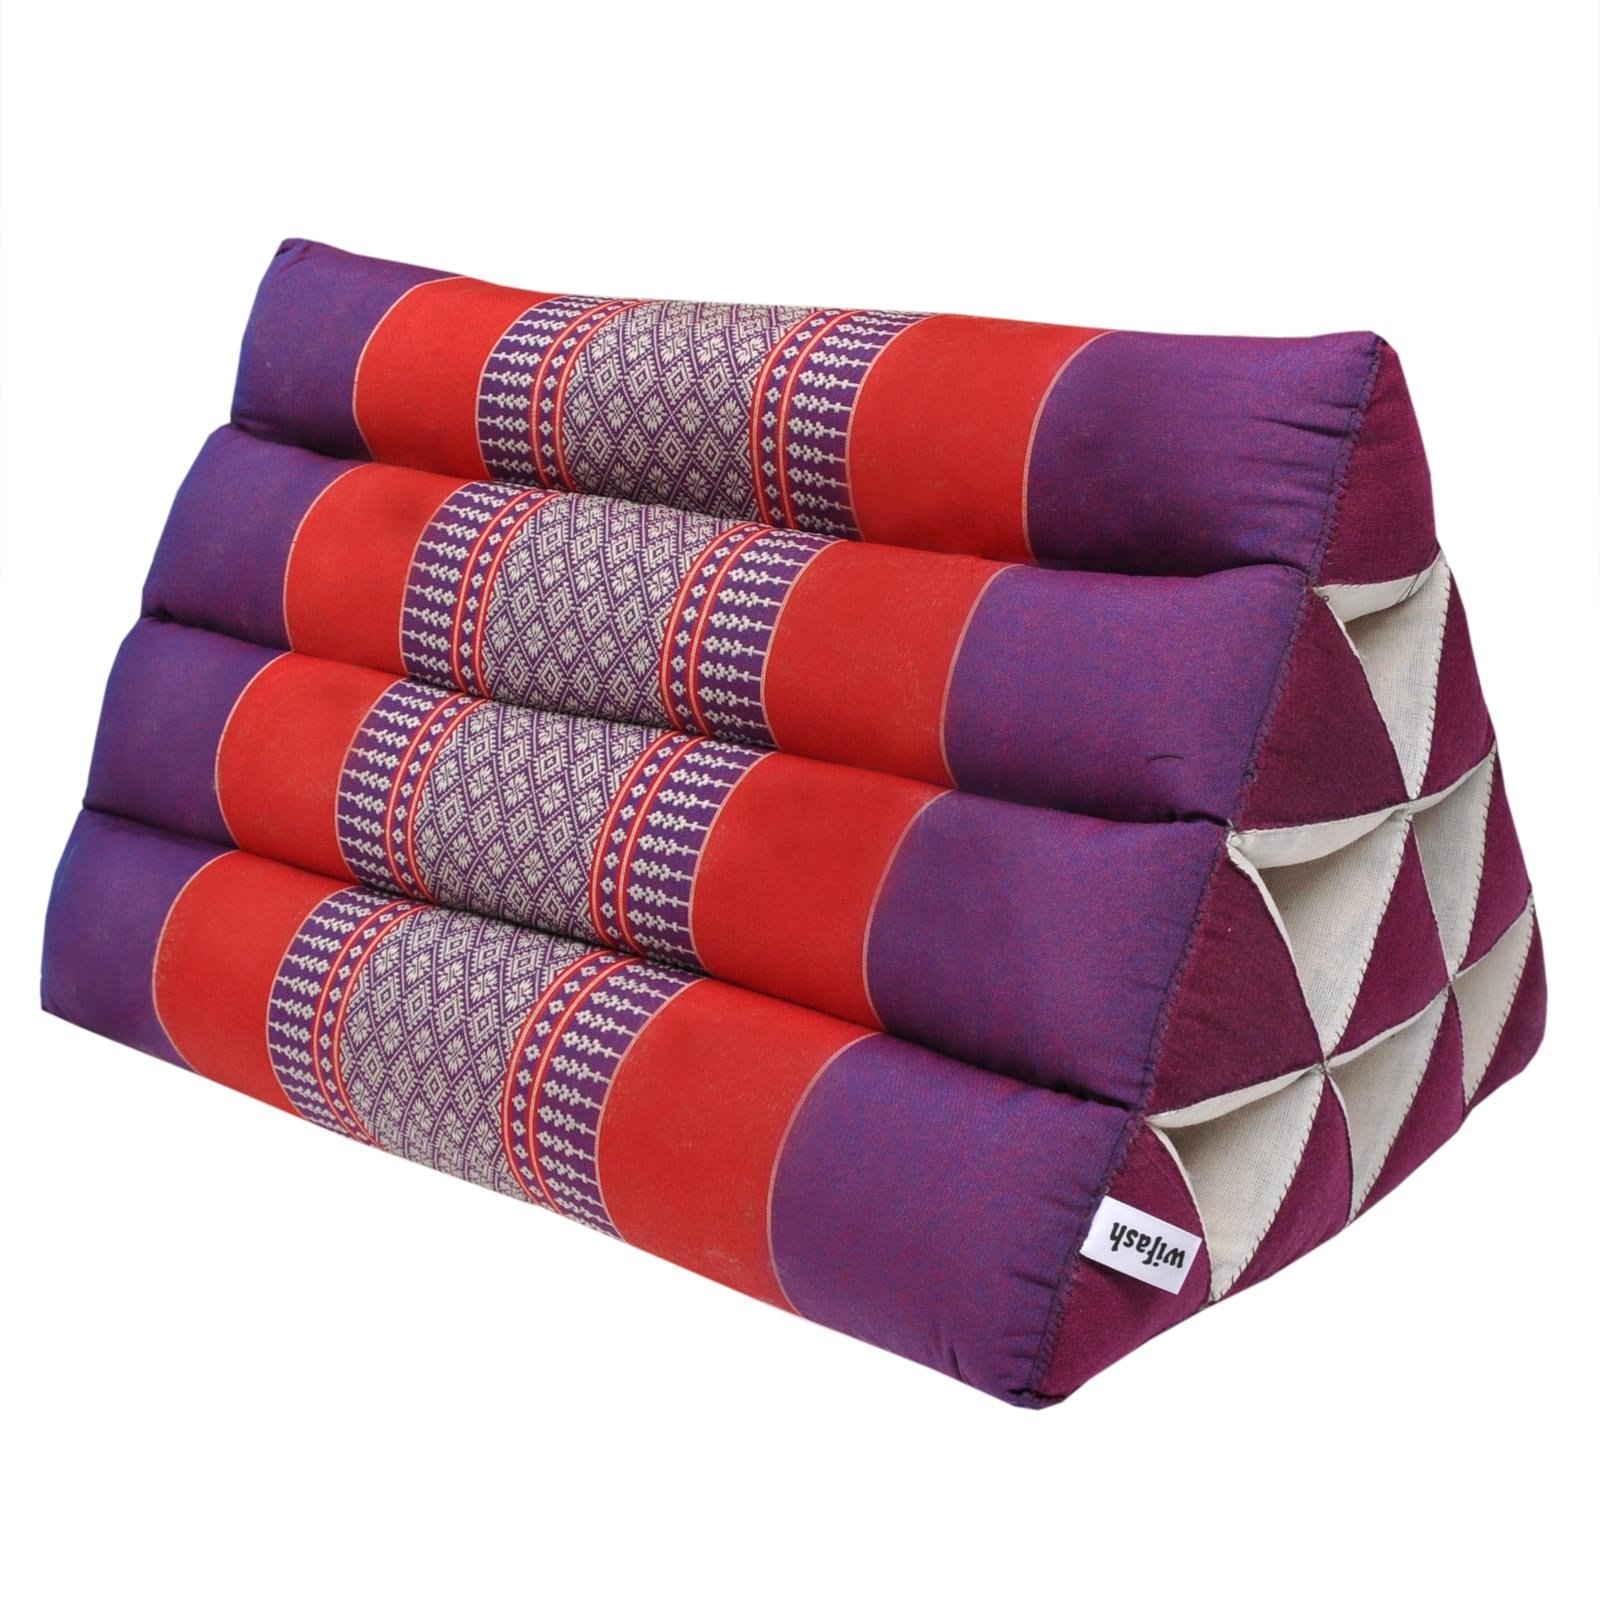 Thai triangular cushion, relaxation, beach, kapok, made in Thailand, Violet/Red (81500) by Wilai GmbH